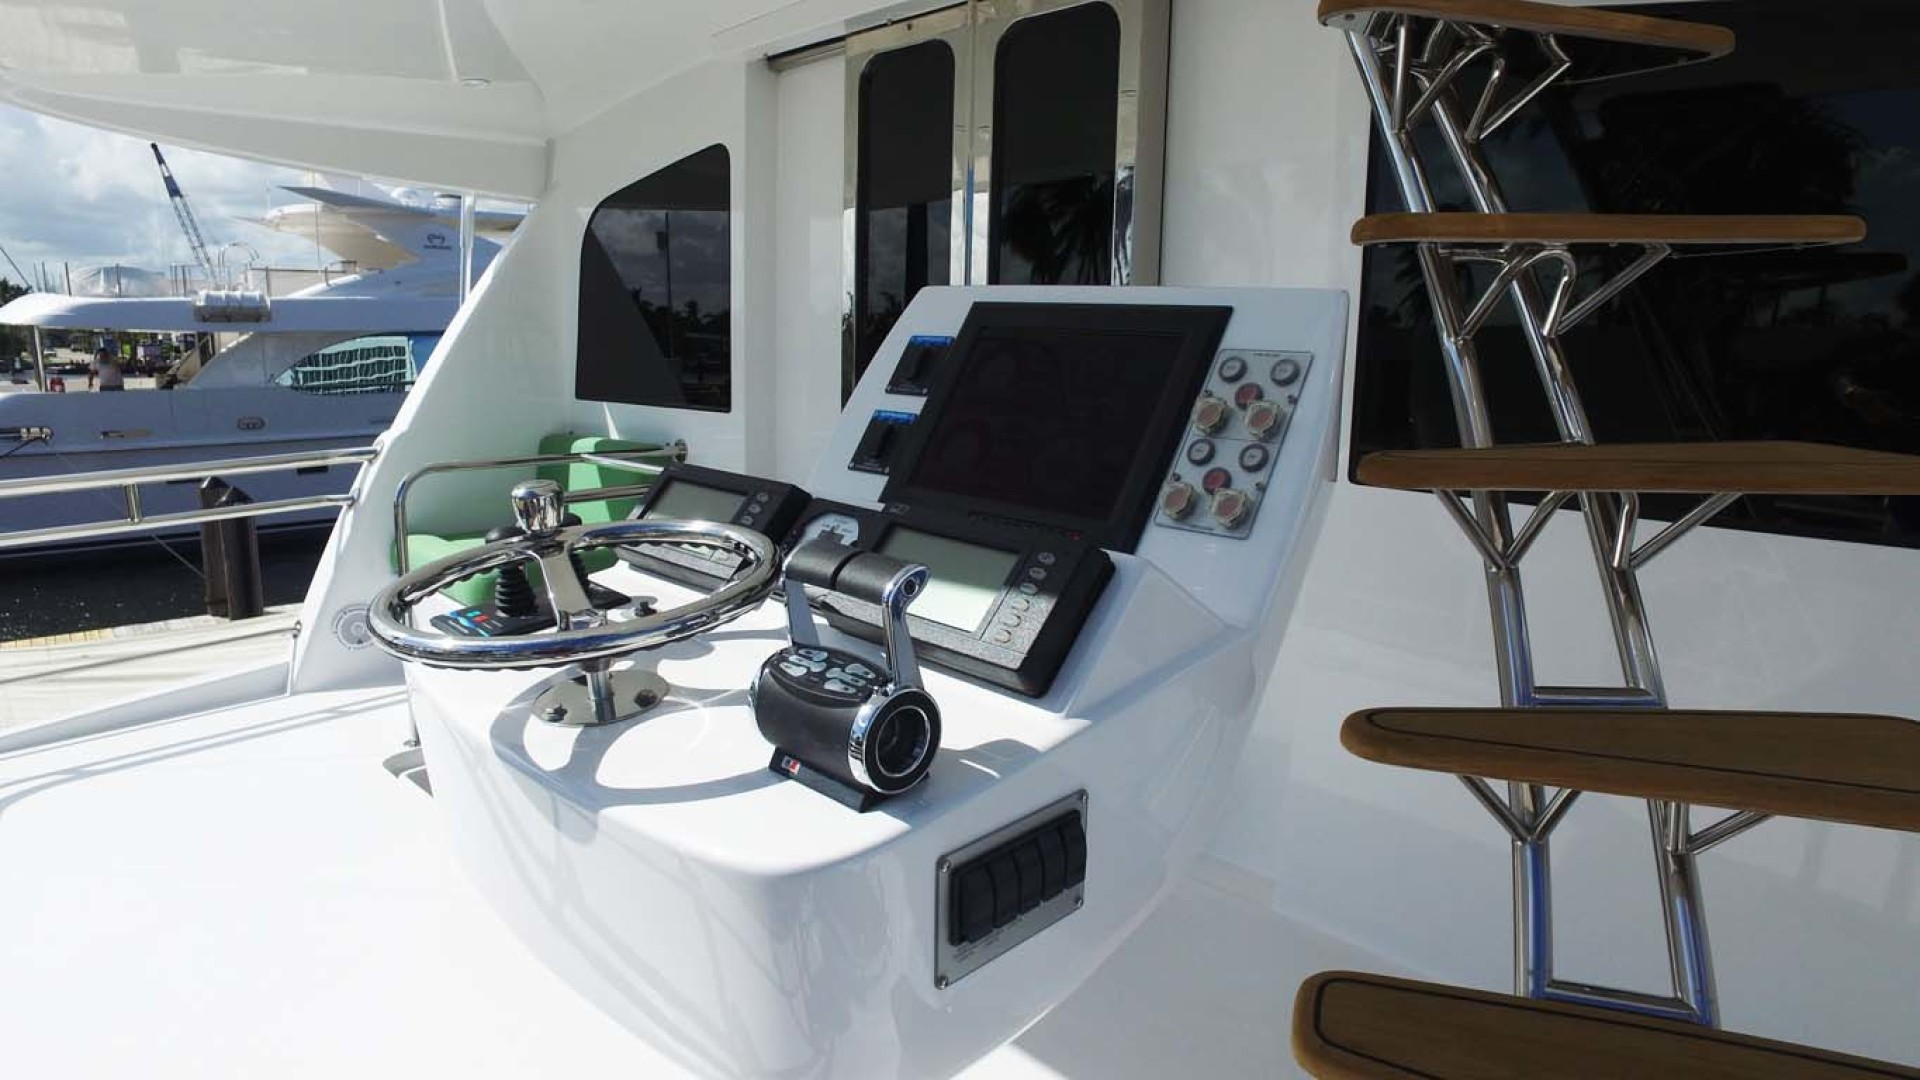 Sea-Force-IX-Sport-Fisherman-2010-Silky-Palm-Beach-Florida-United-States-Exterior-Pilothouse-Controls-1078925